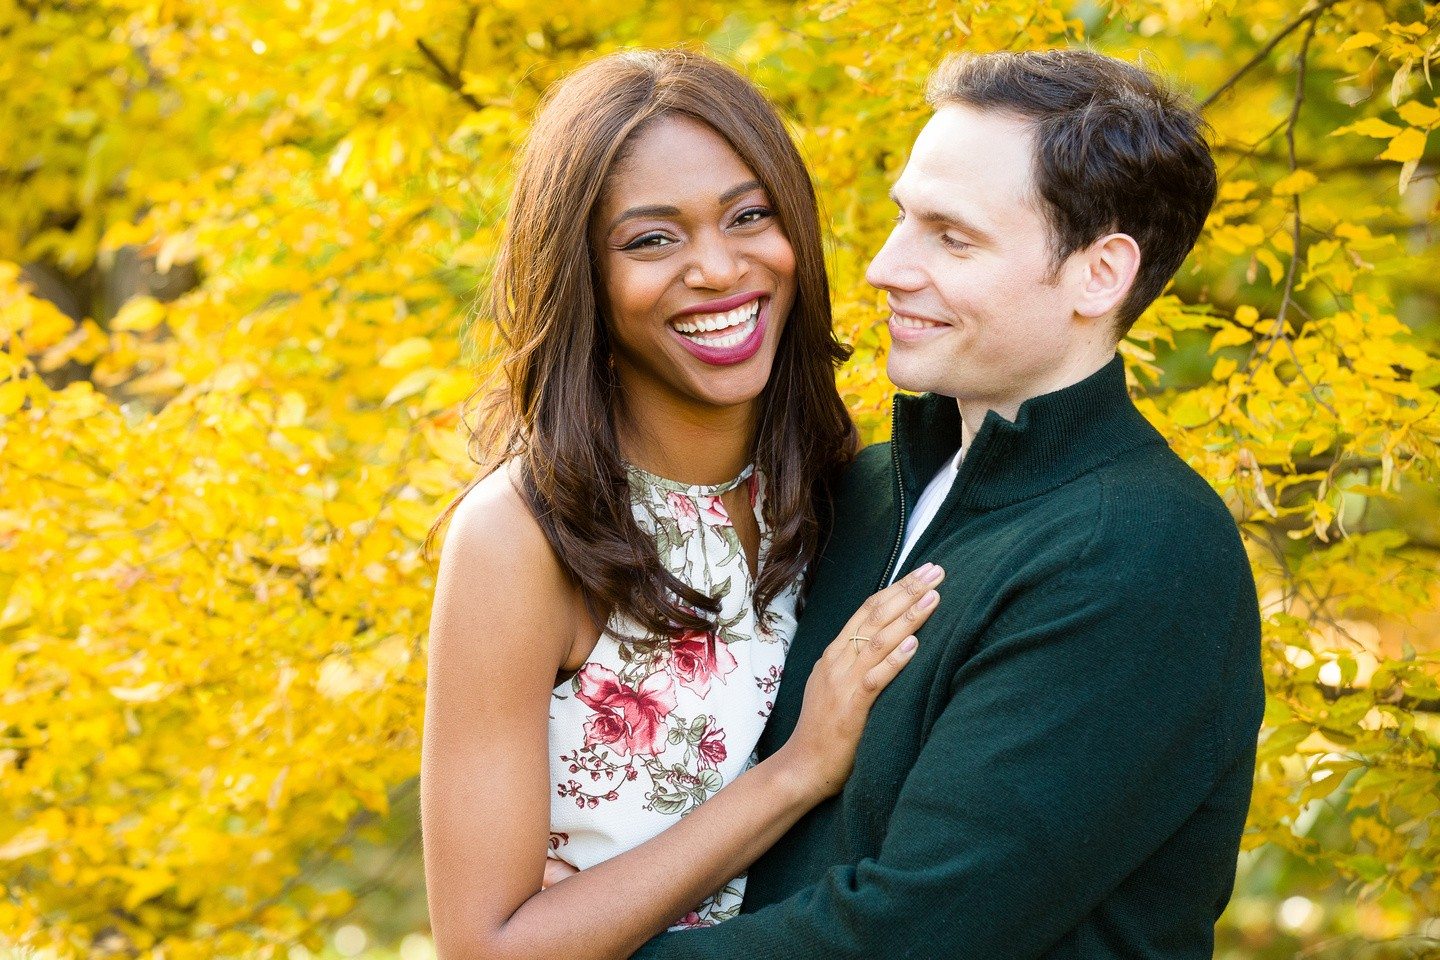 Bree and Nick's Fall Foliage Inspired Engagement Shoot at the Arnold Arboretum